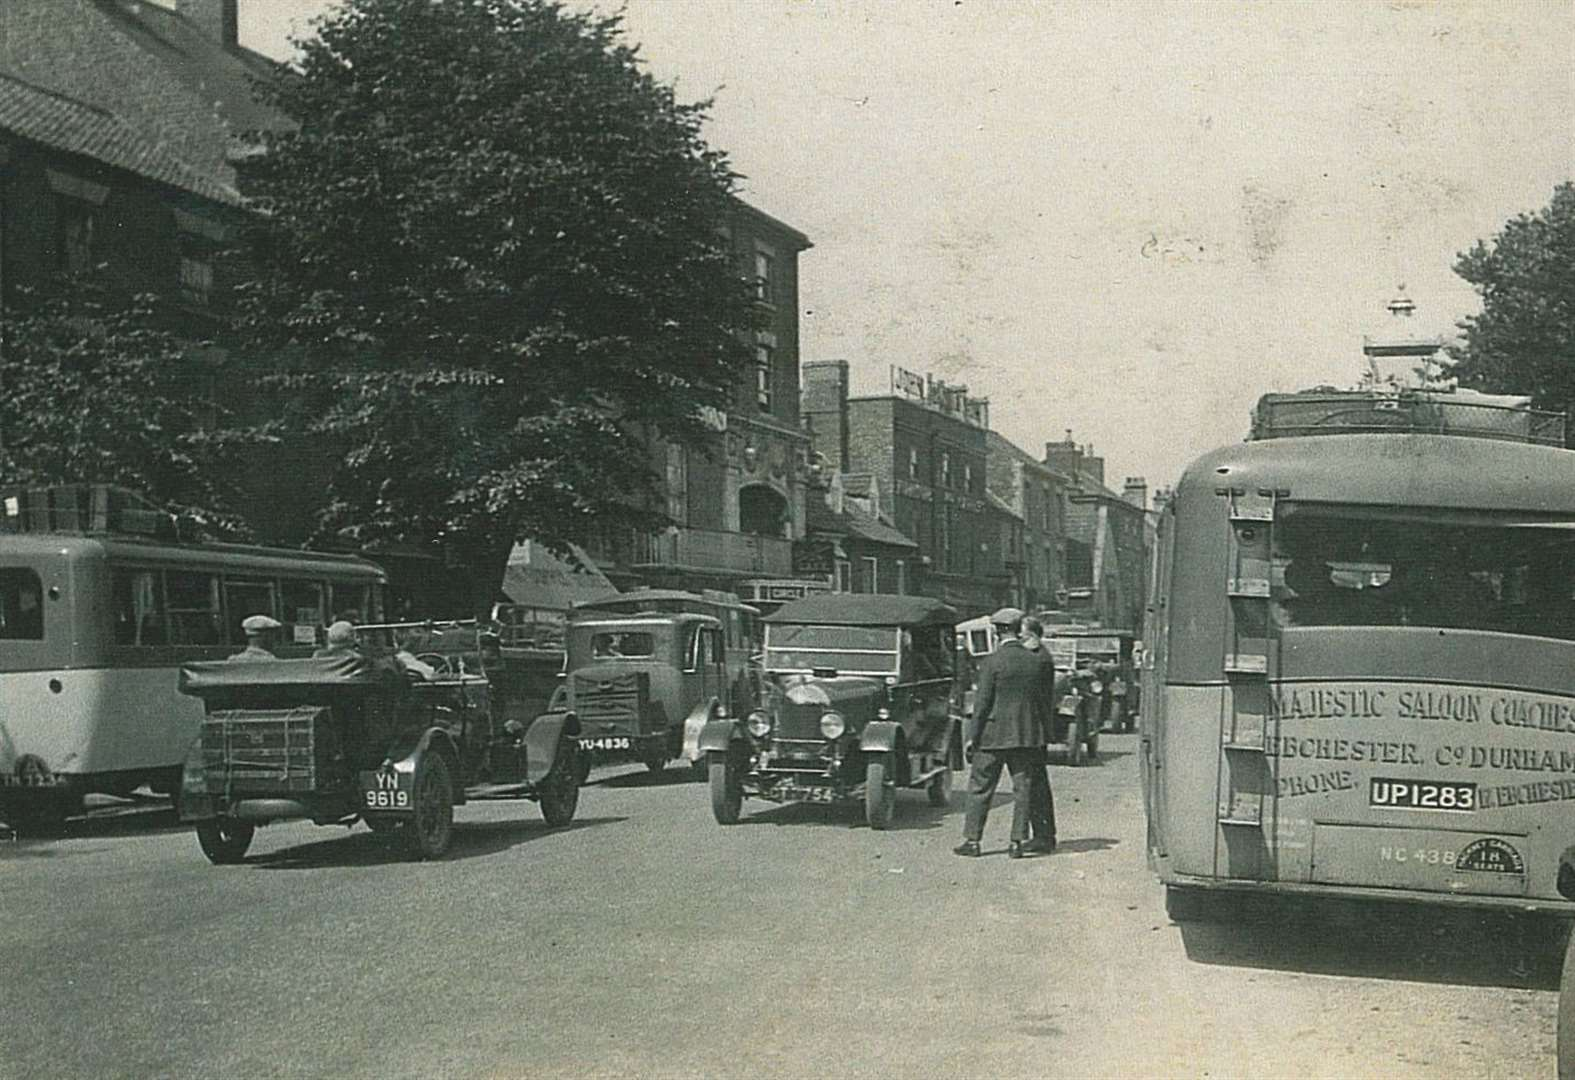 St Peter's Hill was a holiday hive of activity in the 1930s